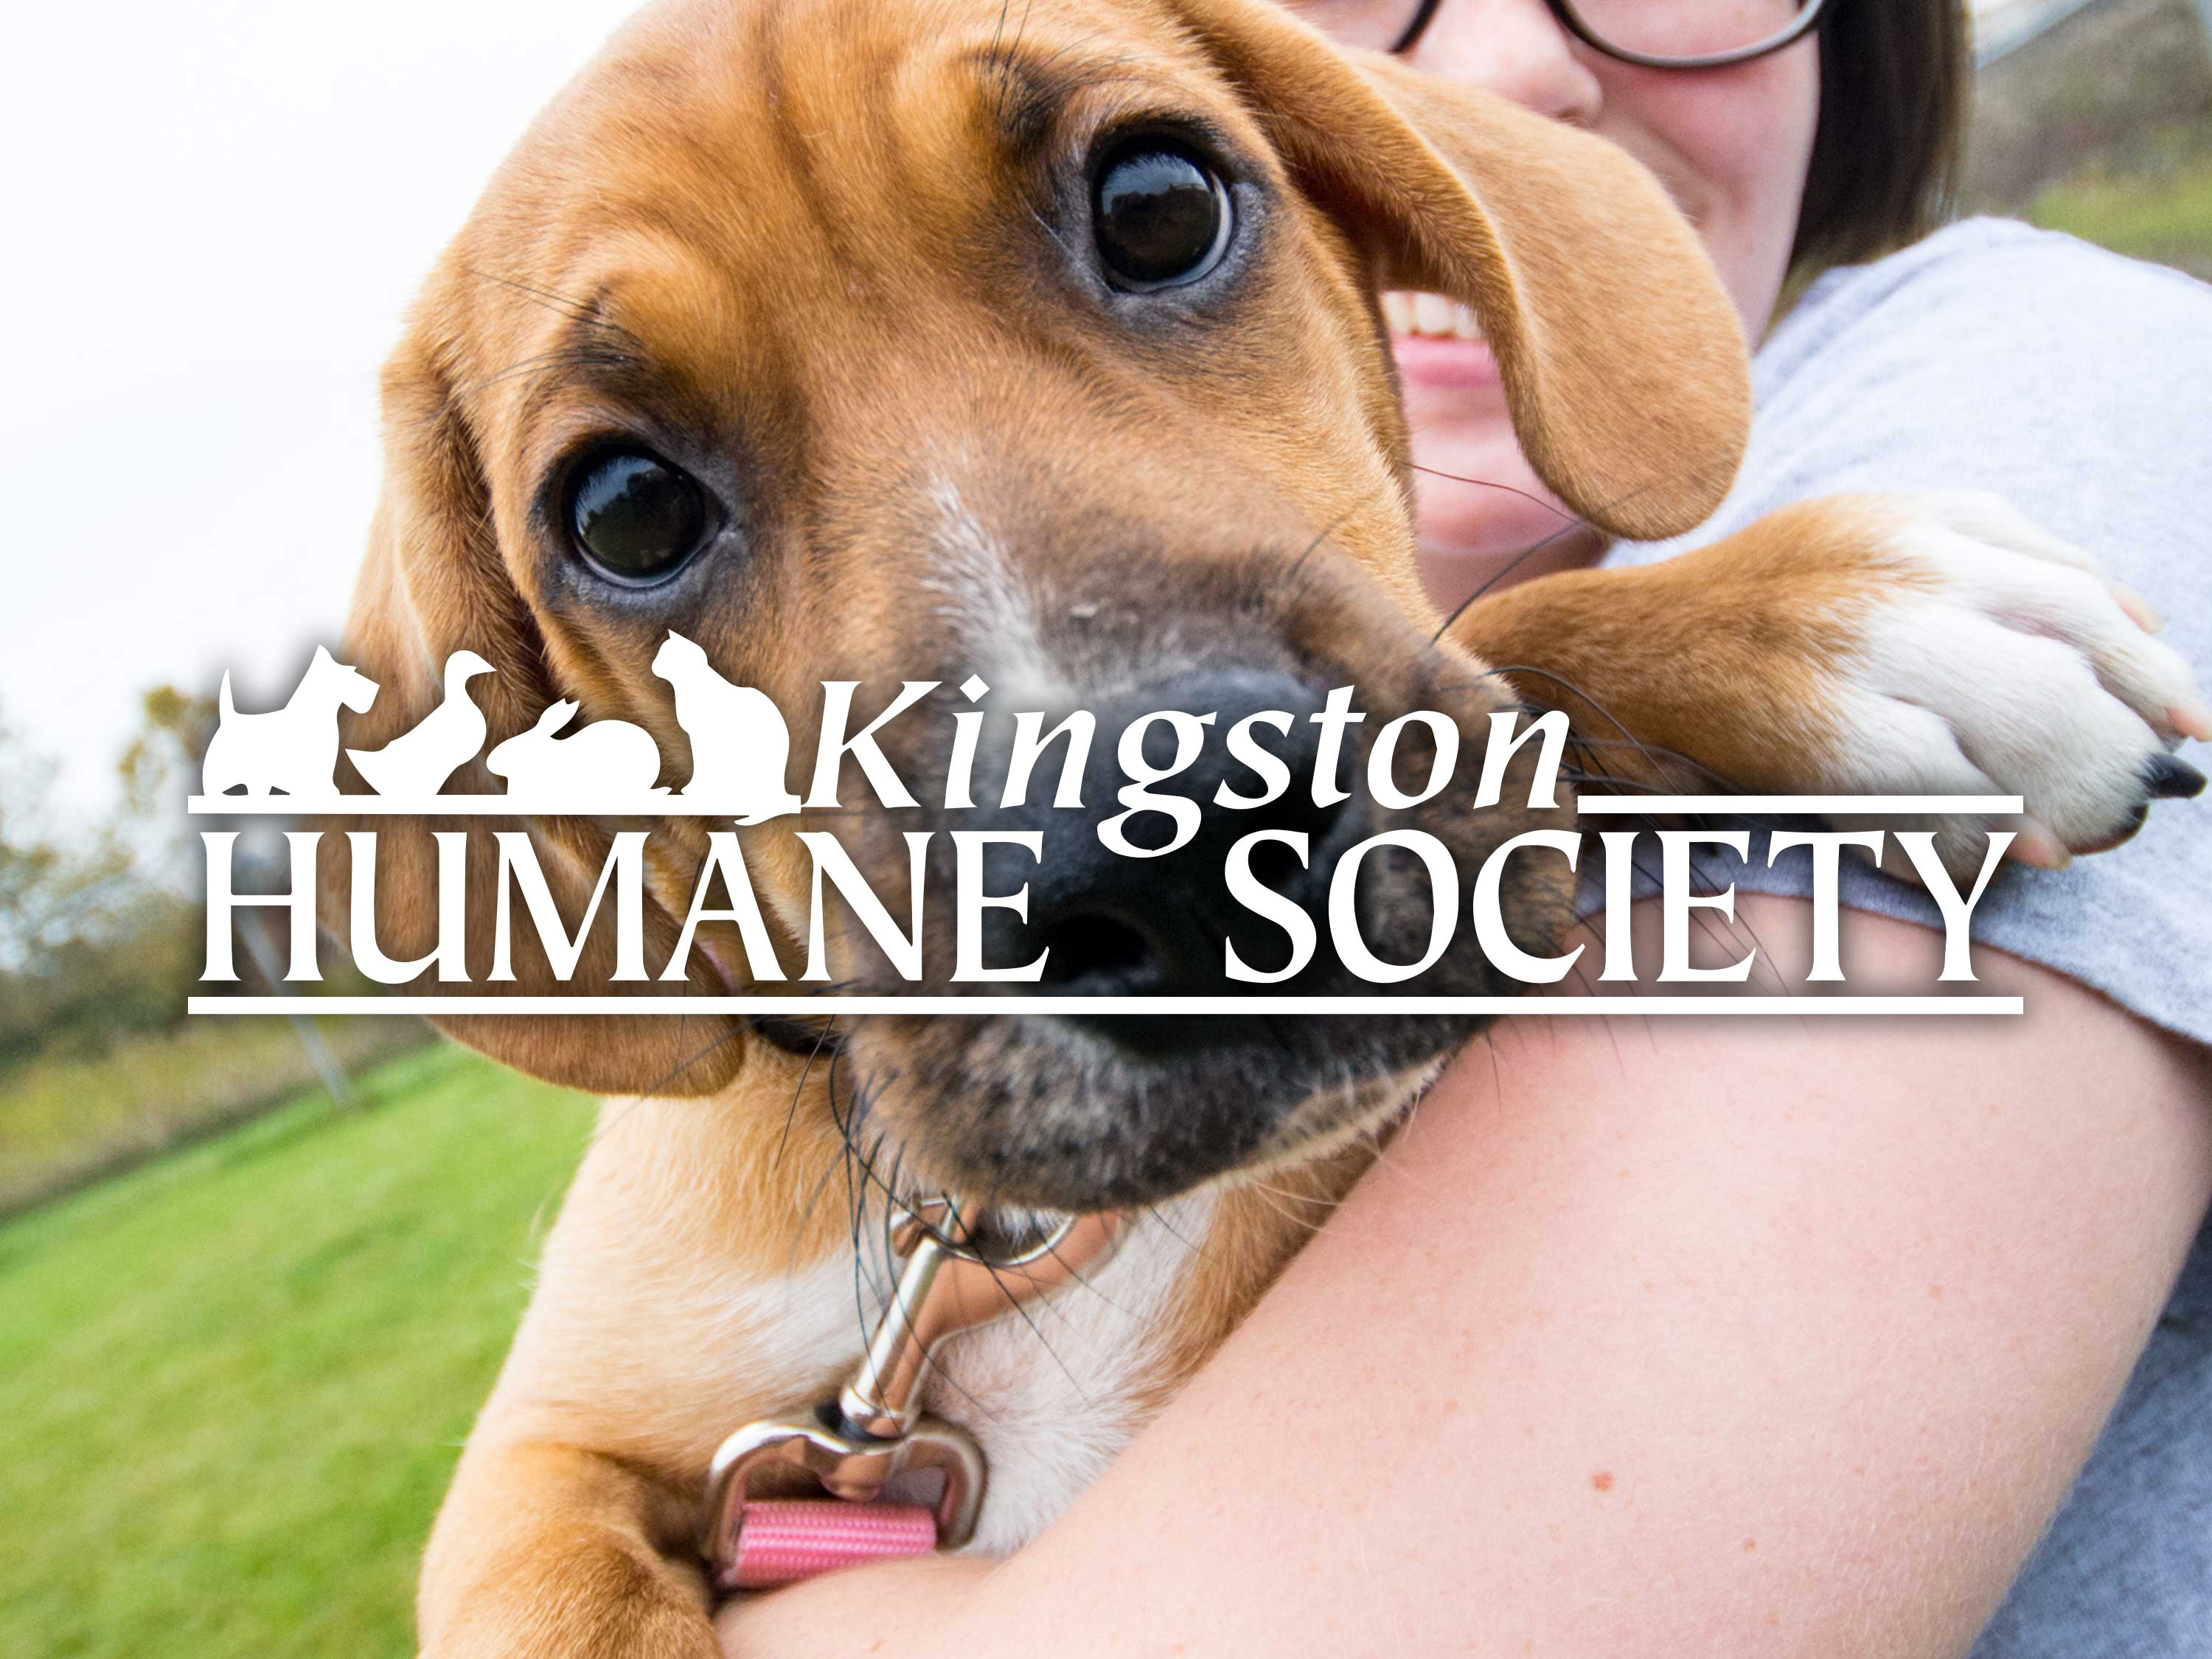 Amplify is there for Not-For-Profit Organizations like the Kingston Humane Society as well.